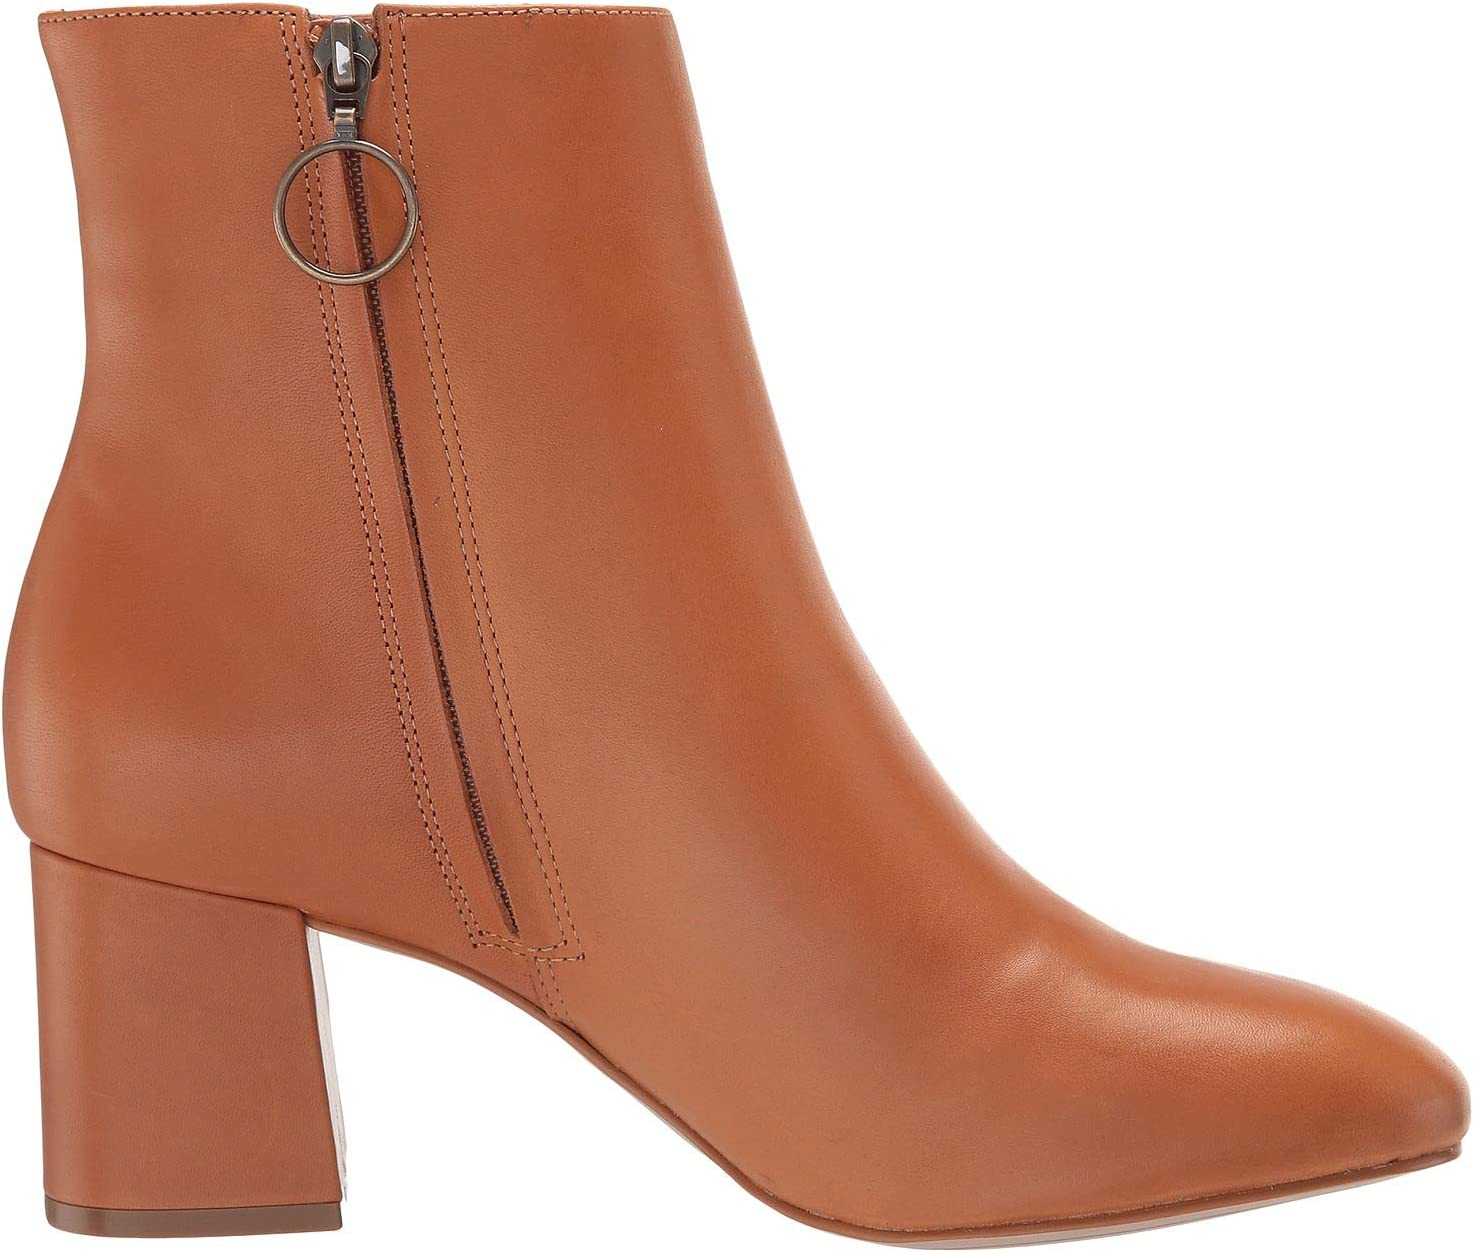 ABLE Celina Ankle Boot | Women's shoes | 2020 Newest